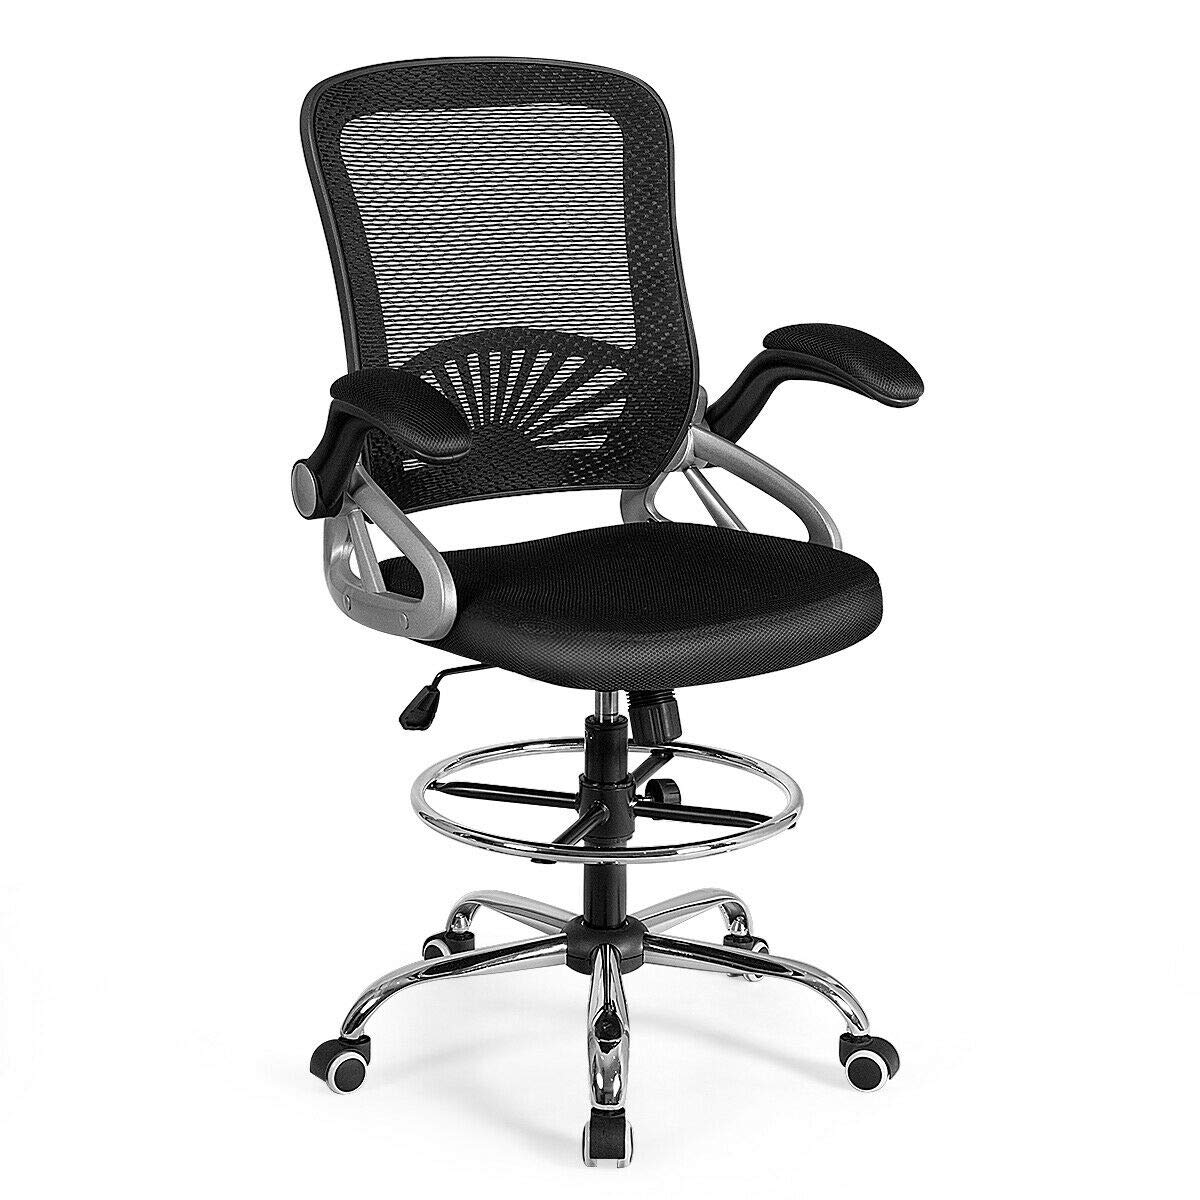 Giantex Mesh Drafting Chair Adjustable Height with Lumbar Support, Ergonomic Computer Chair w/Flip Up Arms & Footrest Ring, Padded Seat, Swivel Rolling Executive Chair by Giantex